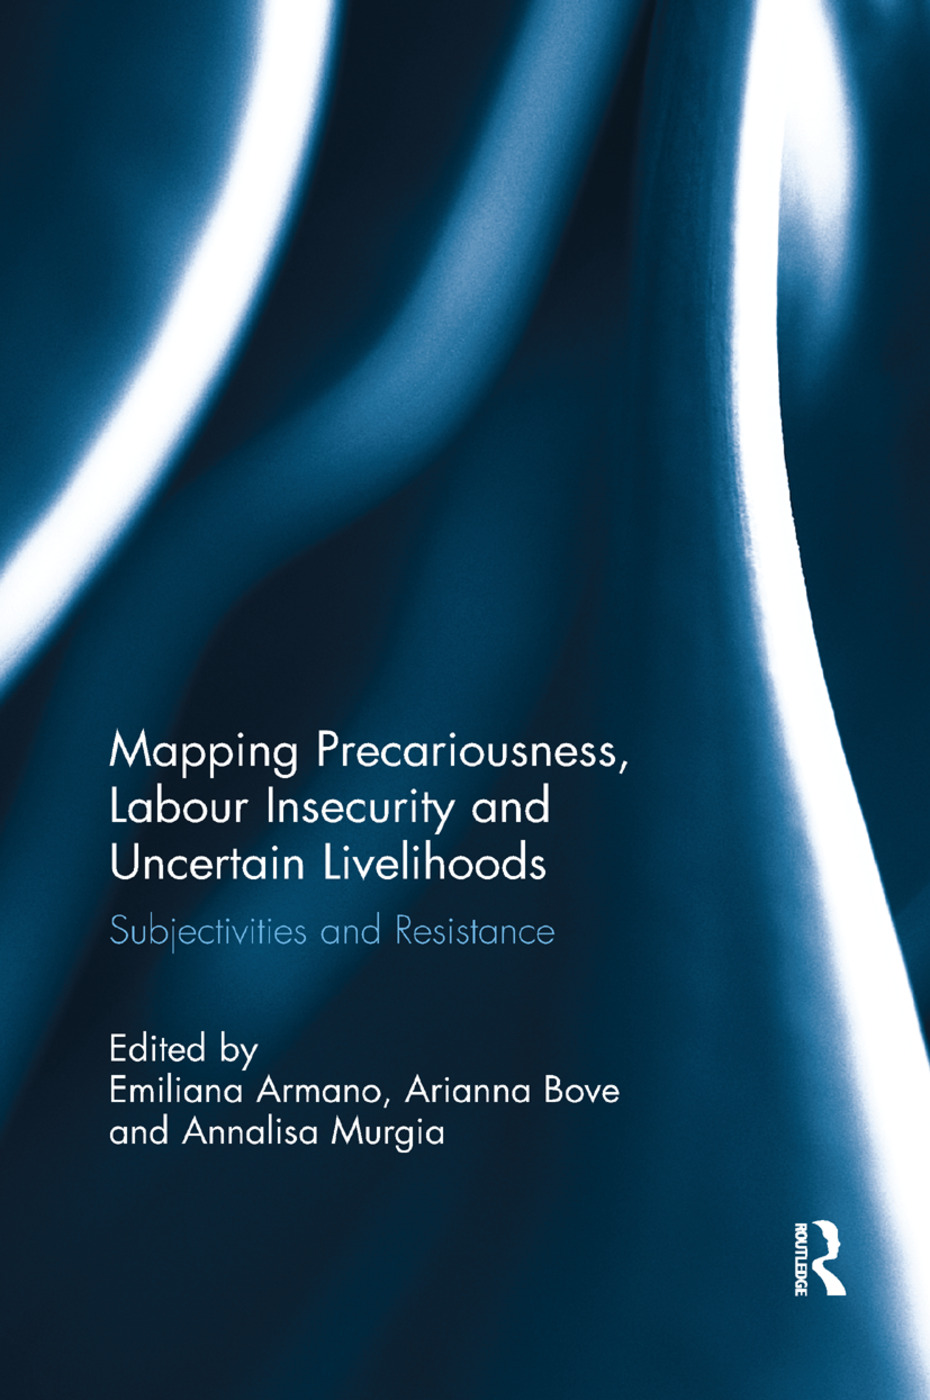 Mapping Precariousness, Labour Insecurity and Uncertain Livelihoods: Subjectivities and Resistance book cover